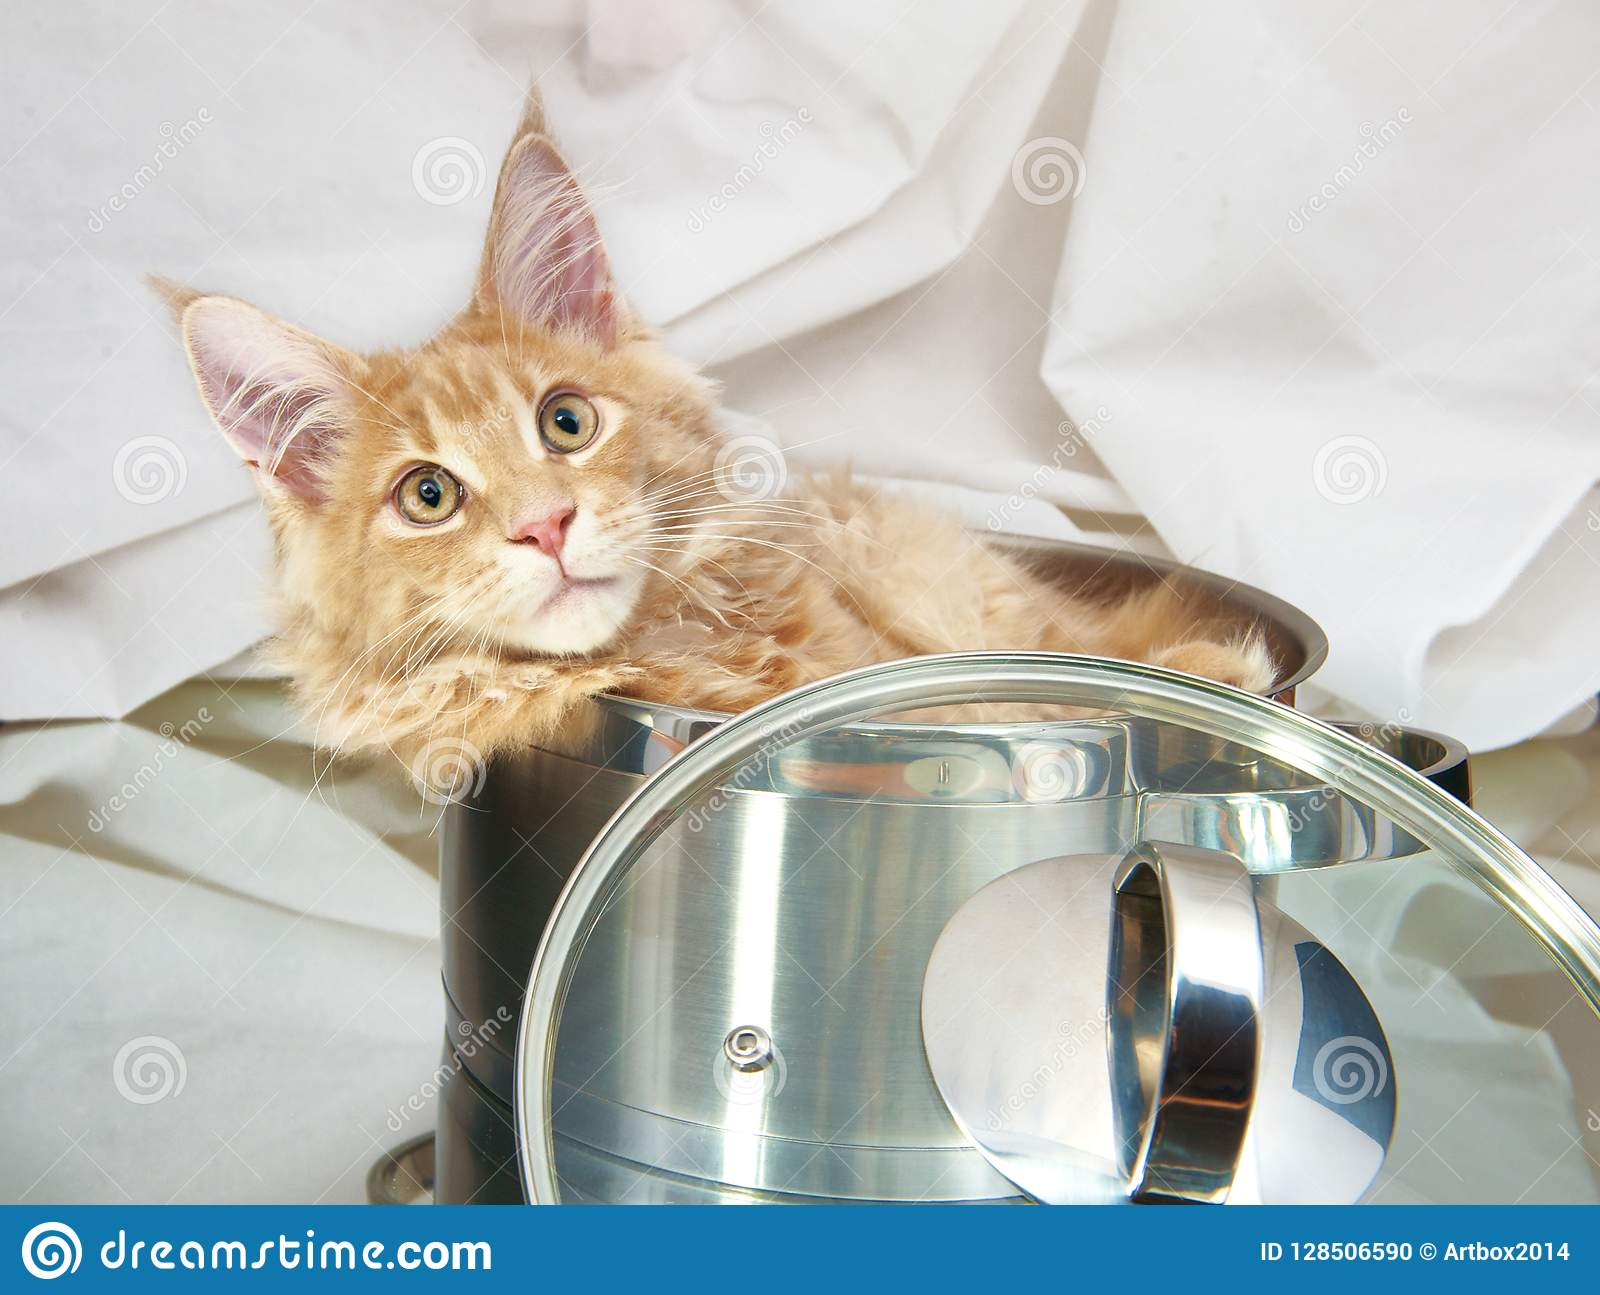 Cat Maine Coon in pan